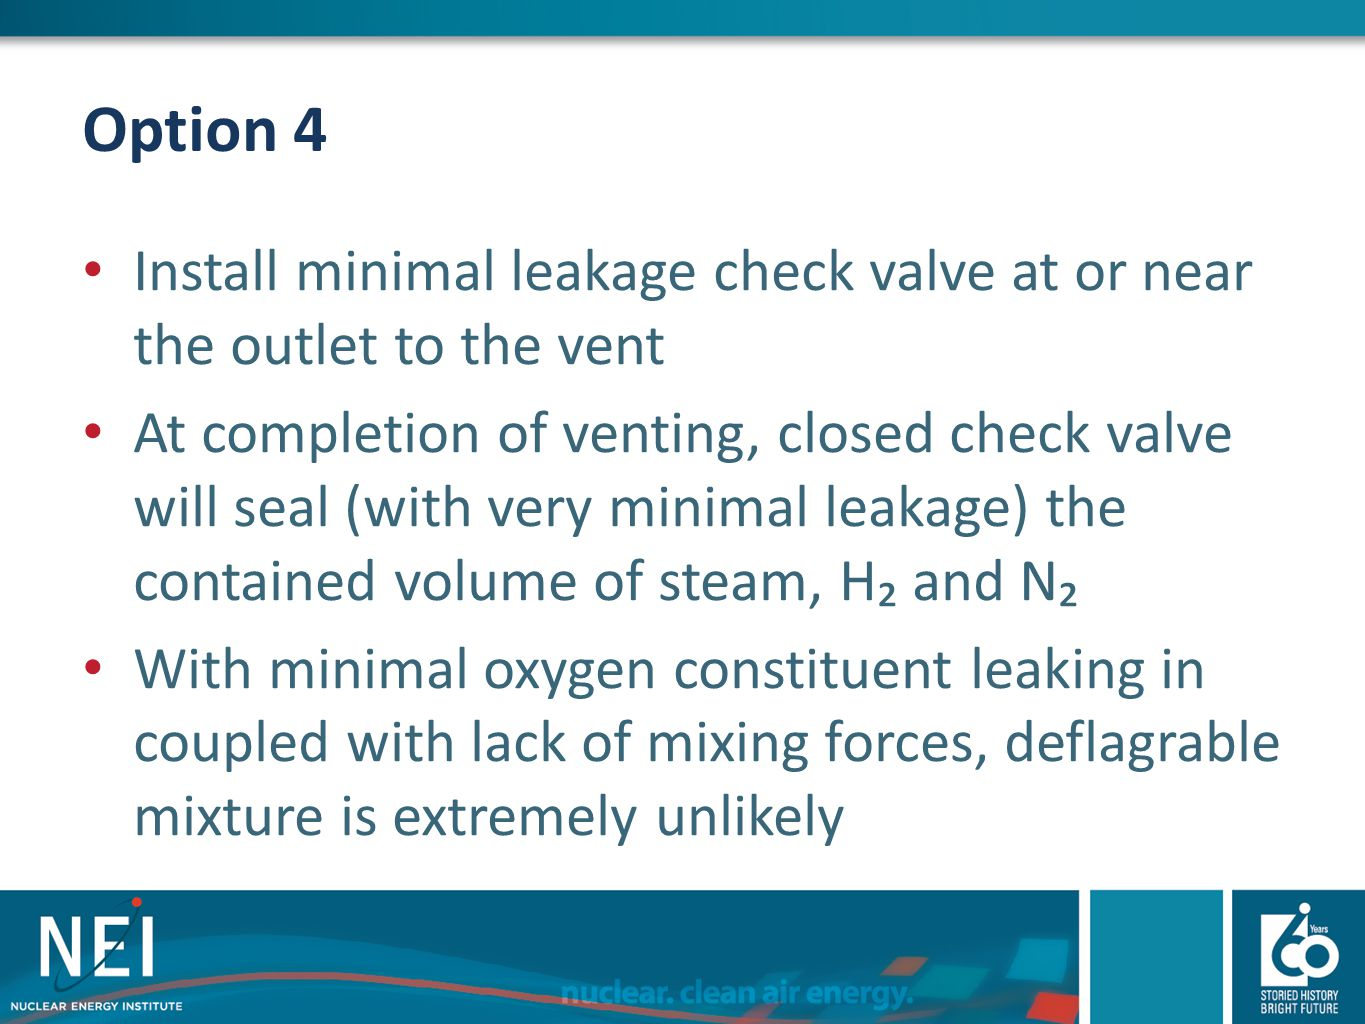 Option 4 Install minimal leakage check valve at or near the outlet to the vent.